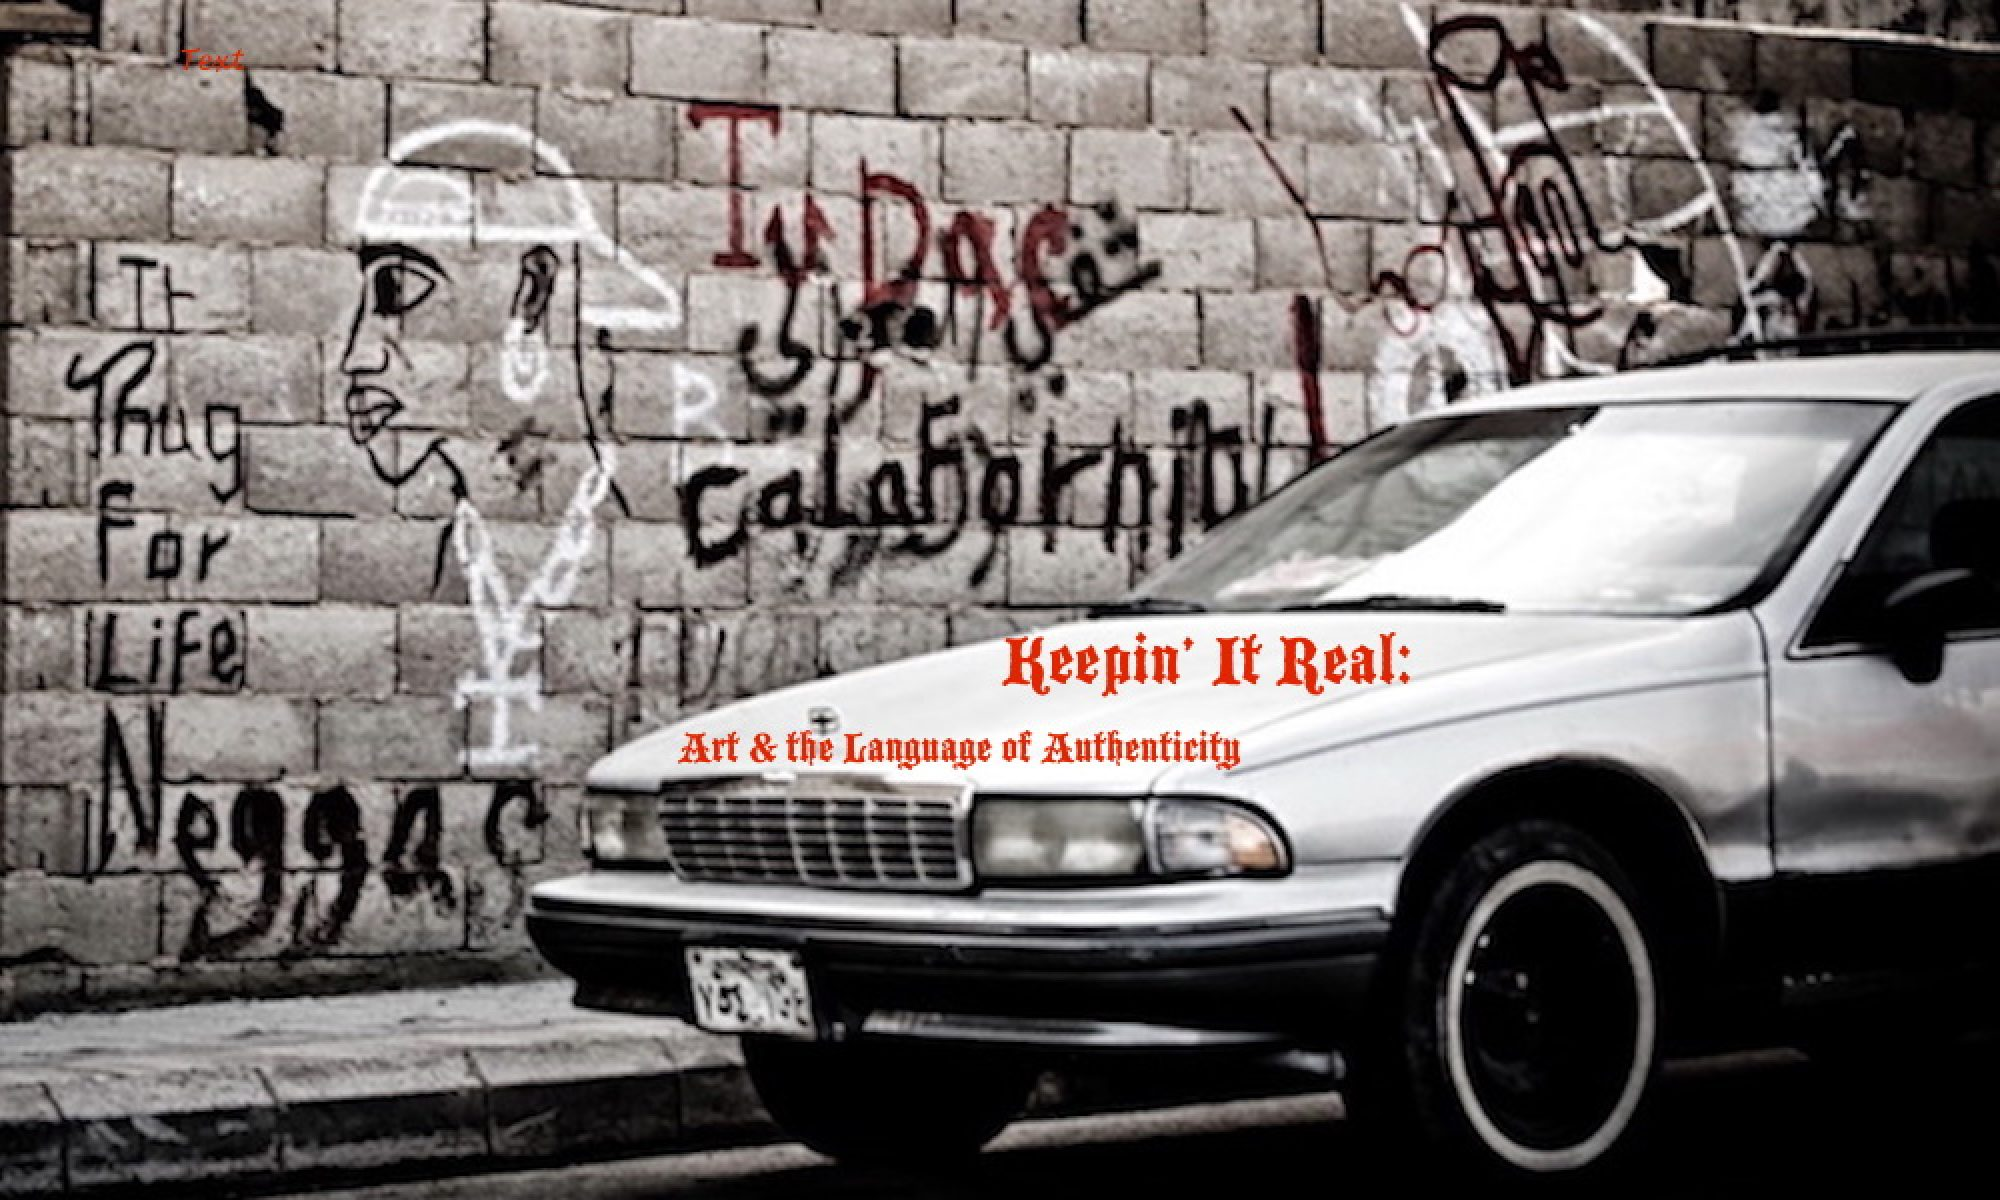 Keepin' It Real:  Art & the Language of Authenticity